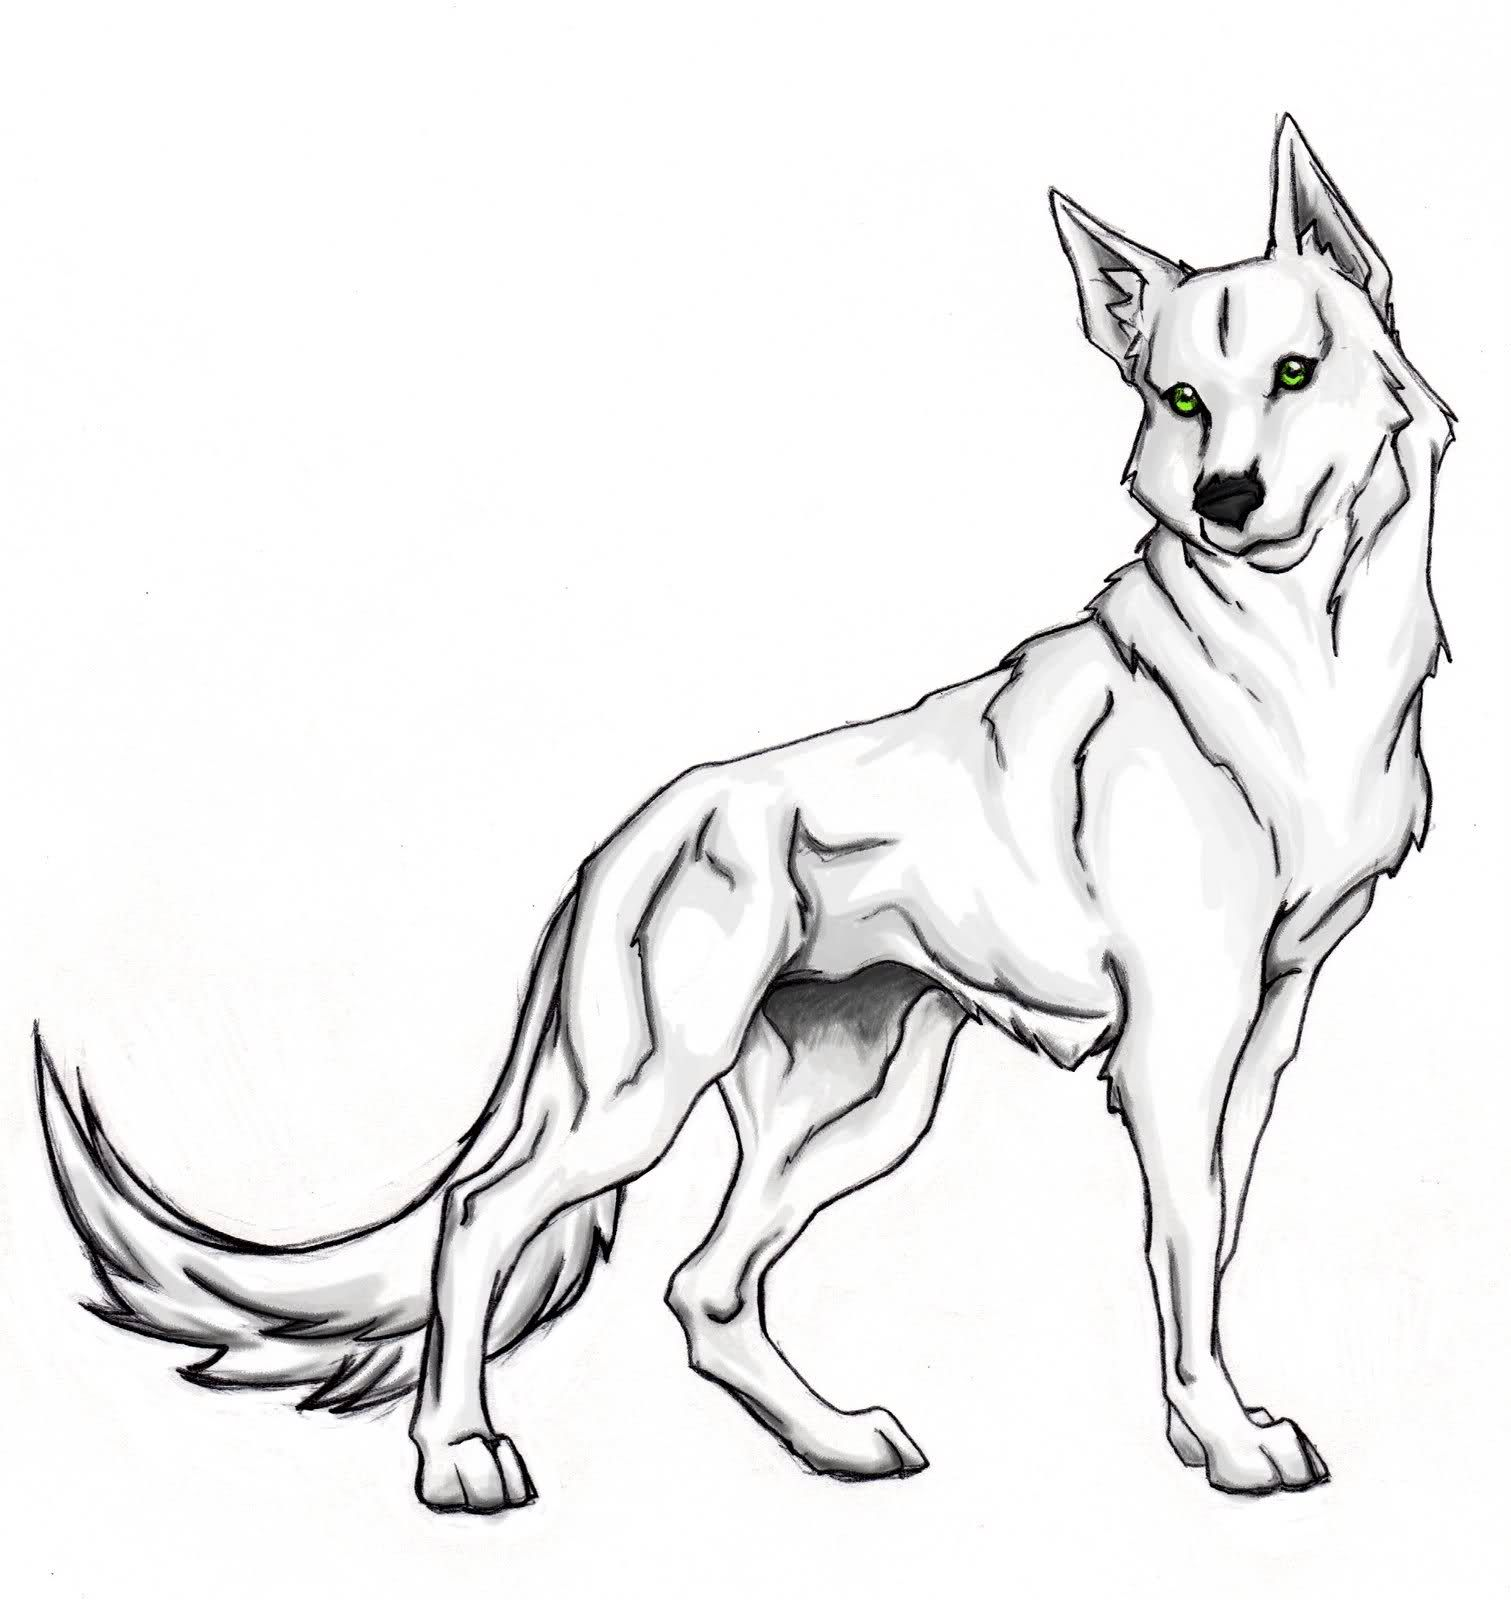 coloring pages wolves - photo#20